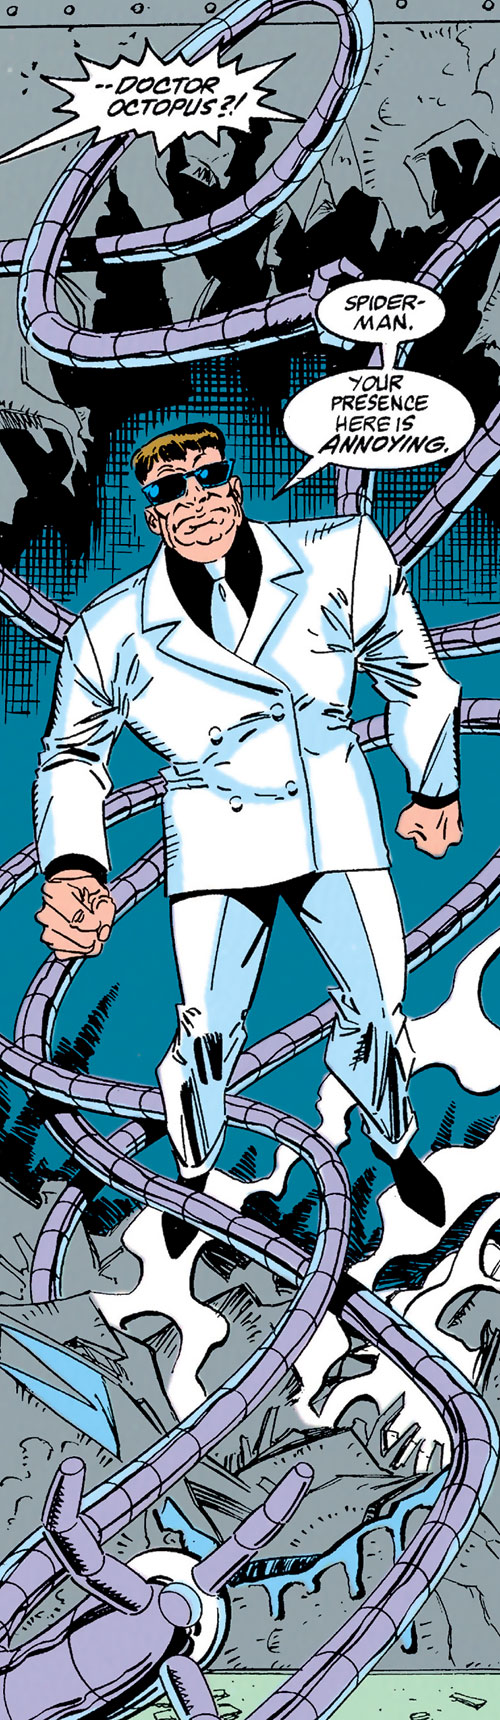 Doctor Octopus (Spider-Man enemy) in a white suit